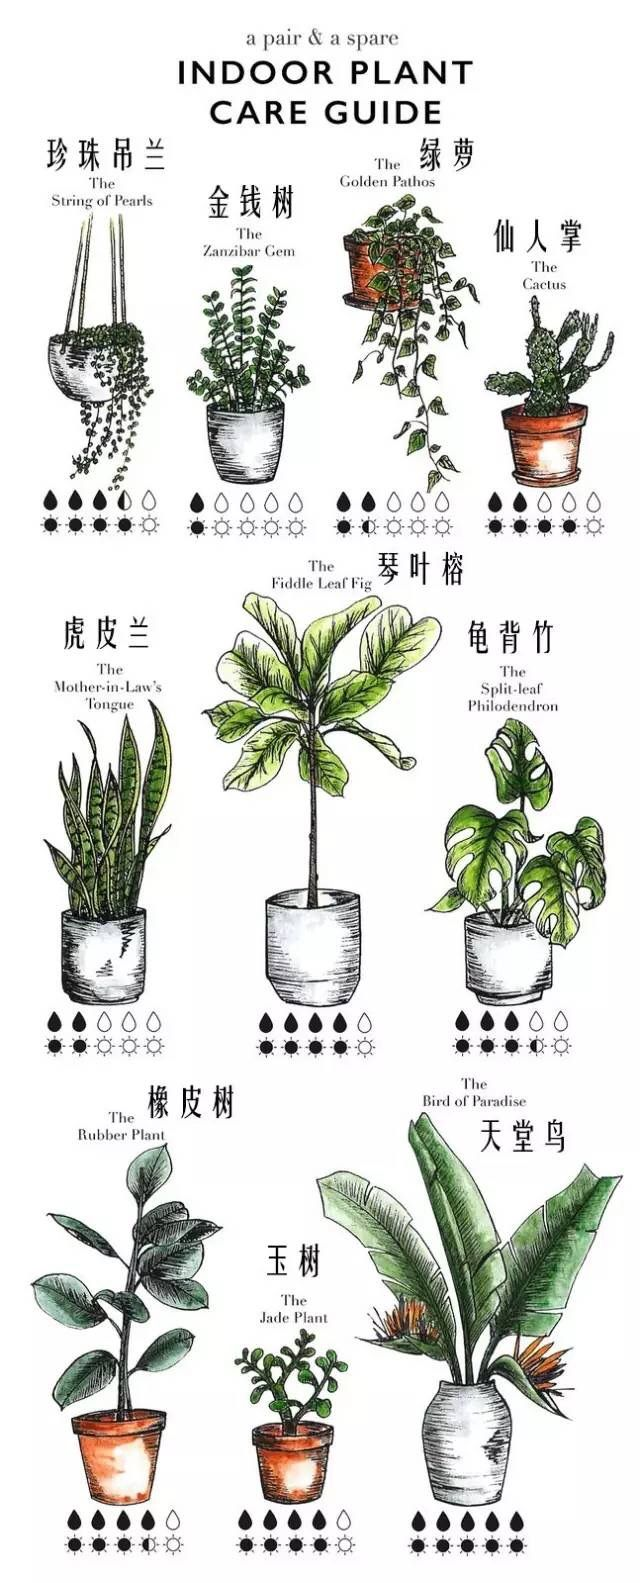 Indoor Plant Care Guide in 2019 | Plants, Indoor plants ... on weed chart, house paint chart, house color chart, vegetables chart, fish chart, house cat chart, poisonous plants chart, house garden chart, fern chart, house building chart, flower chart, bird chart, house animals chart, apple chart, herb chart,